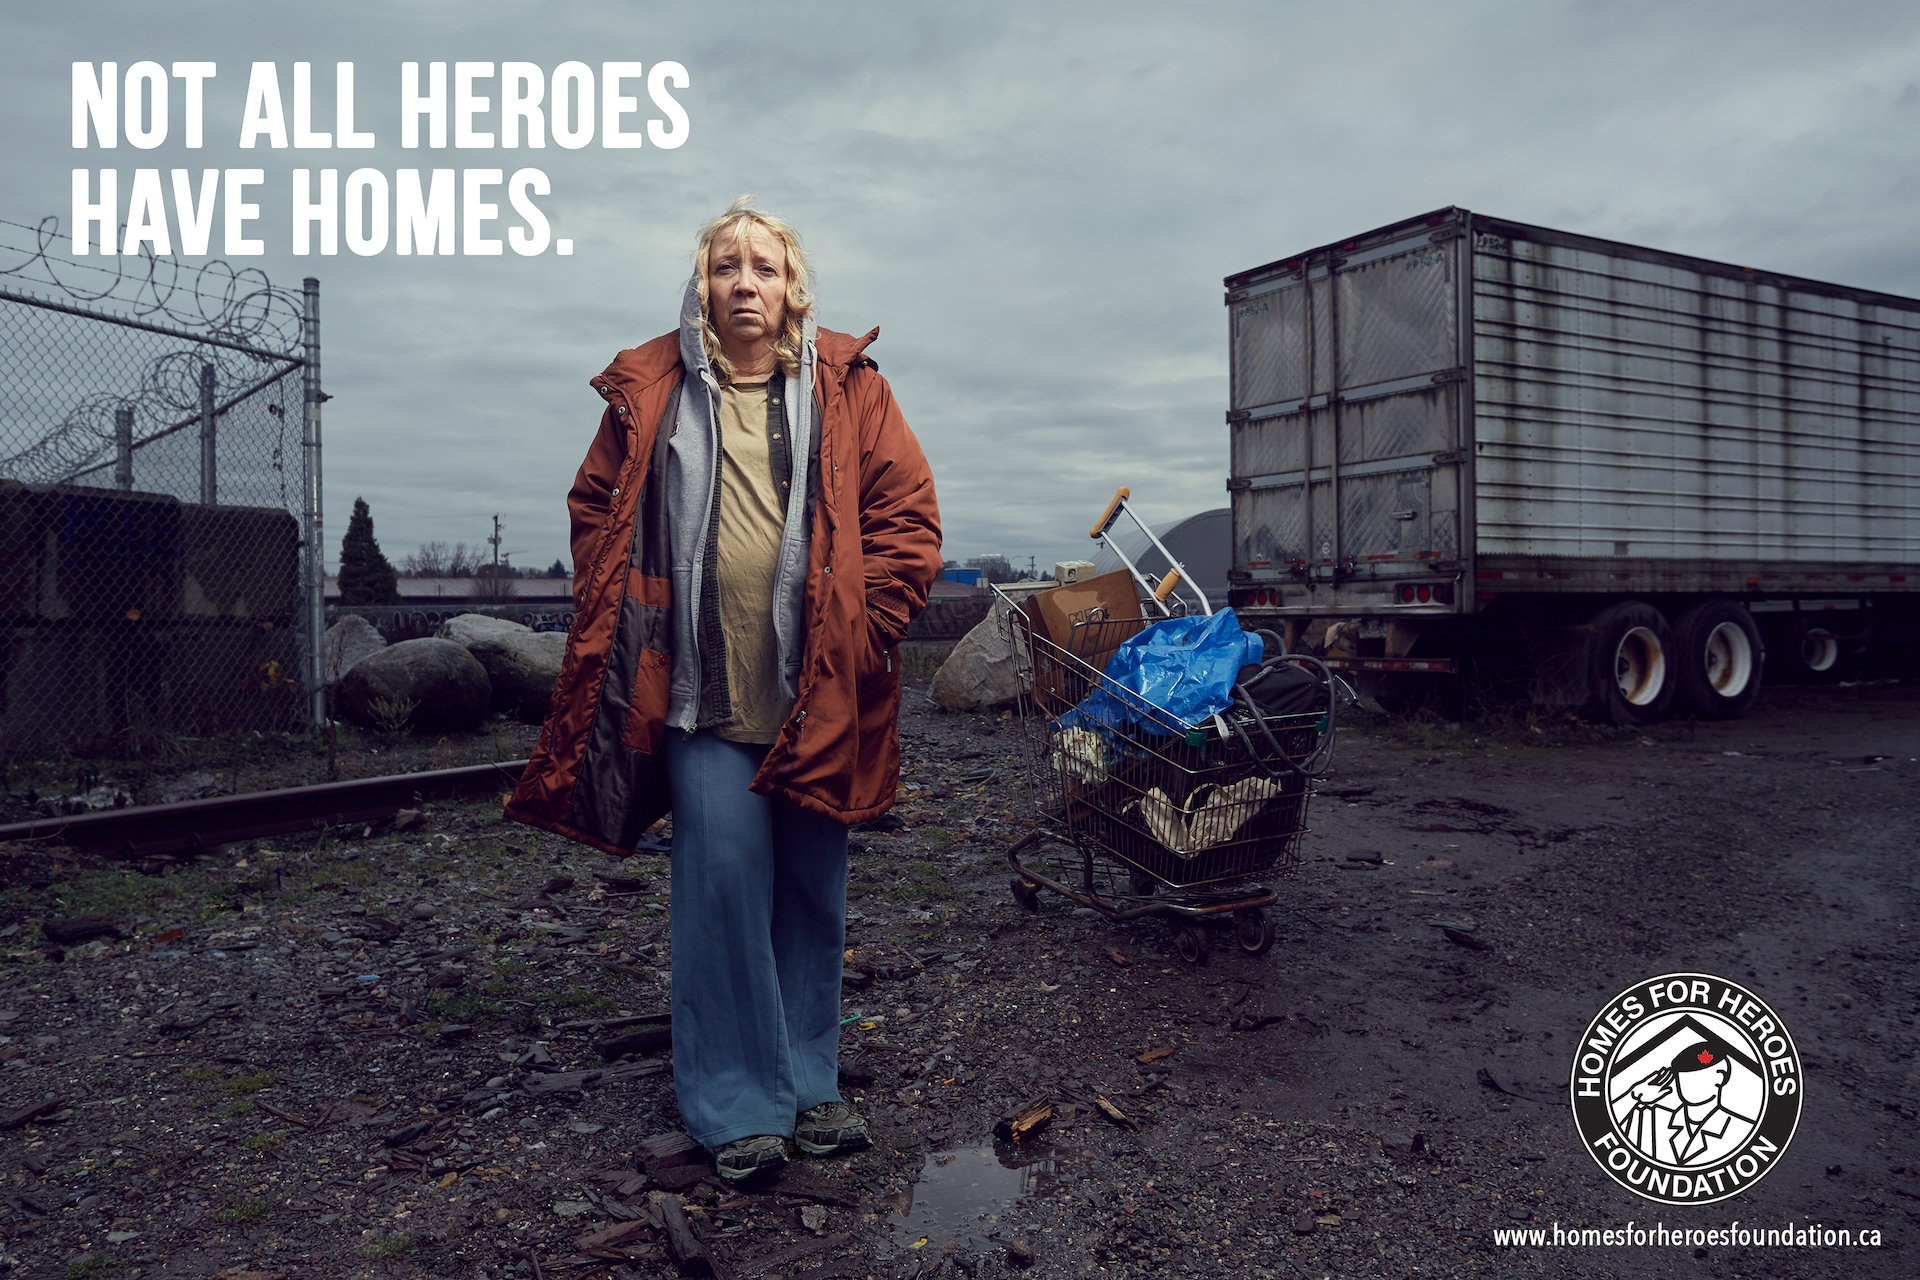 Outdoor Homeless Veteran Ad in Vancouver